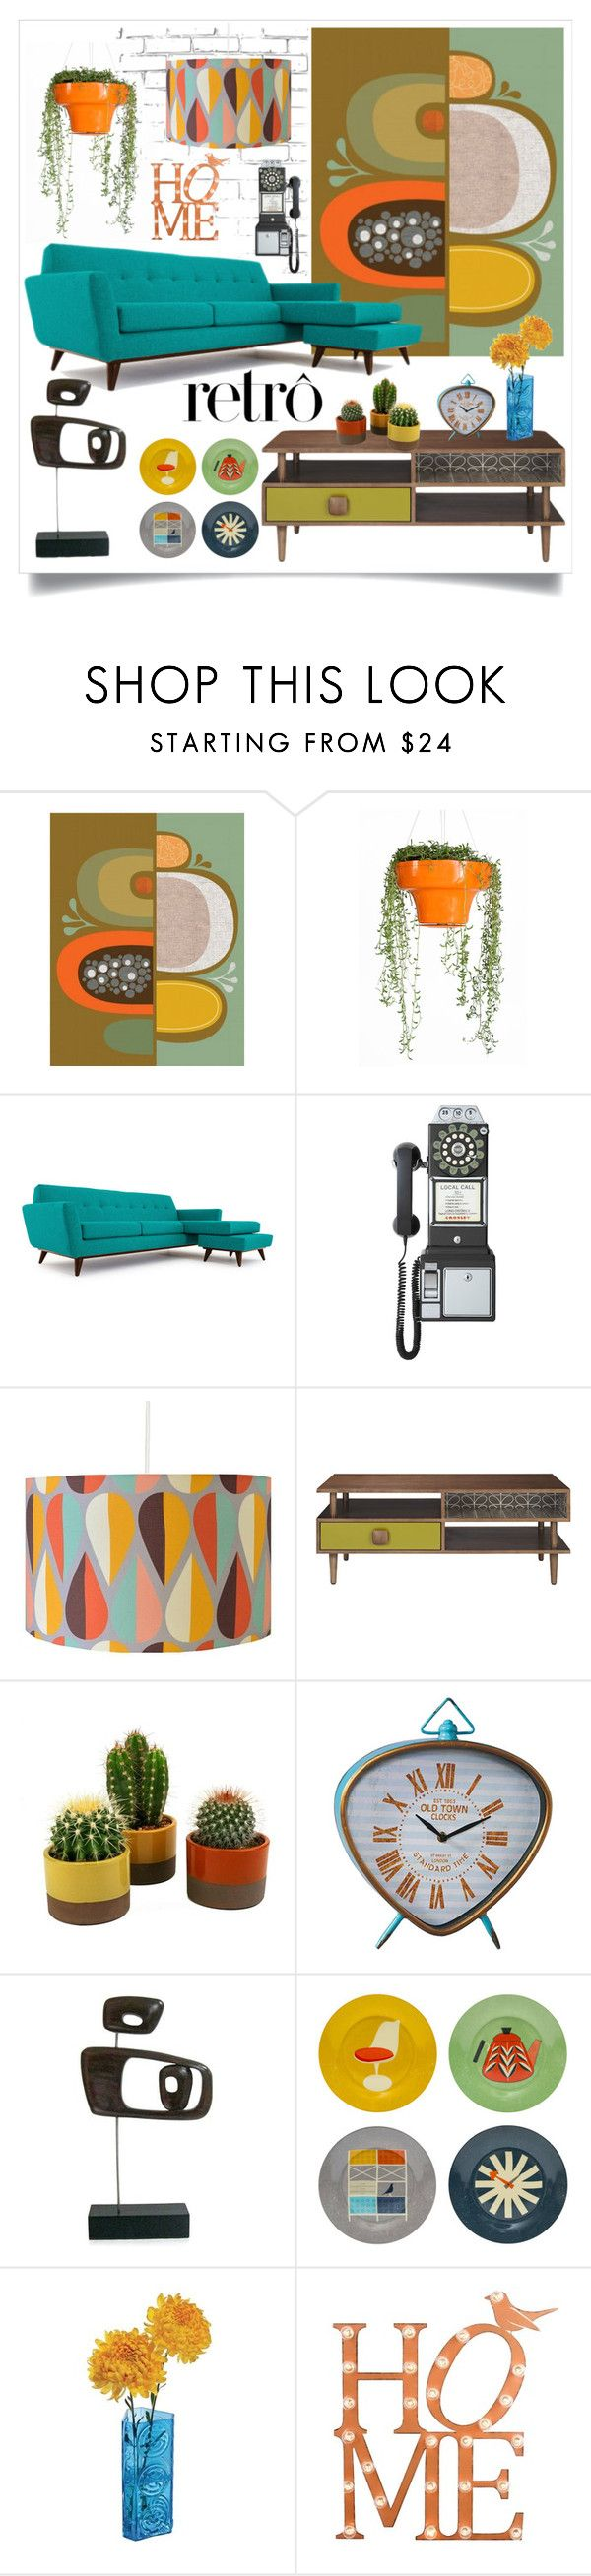 """Retro Home"" by caymansunshine ❤ liked on Polyvore featuring interior, interiors, interior design, home, home decor, interior decorating, Dot & Bo, Wallter, Joybird Furniture and Orla Kiely"